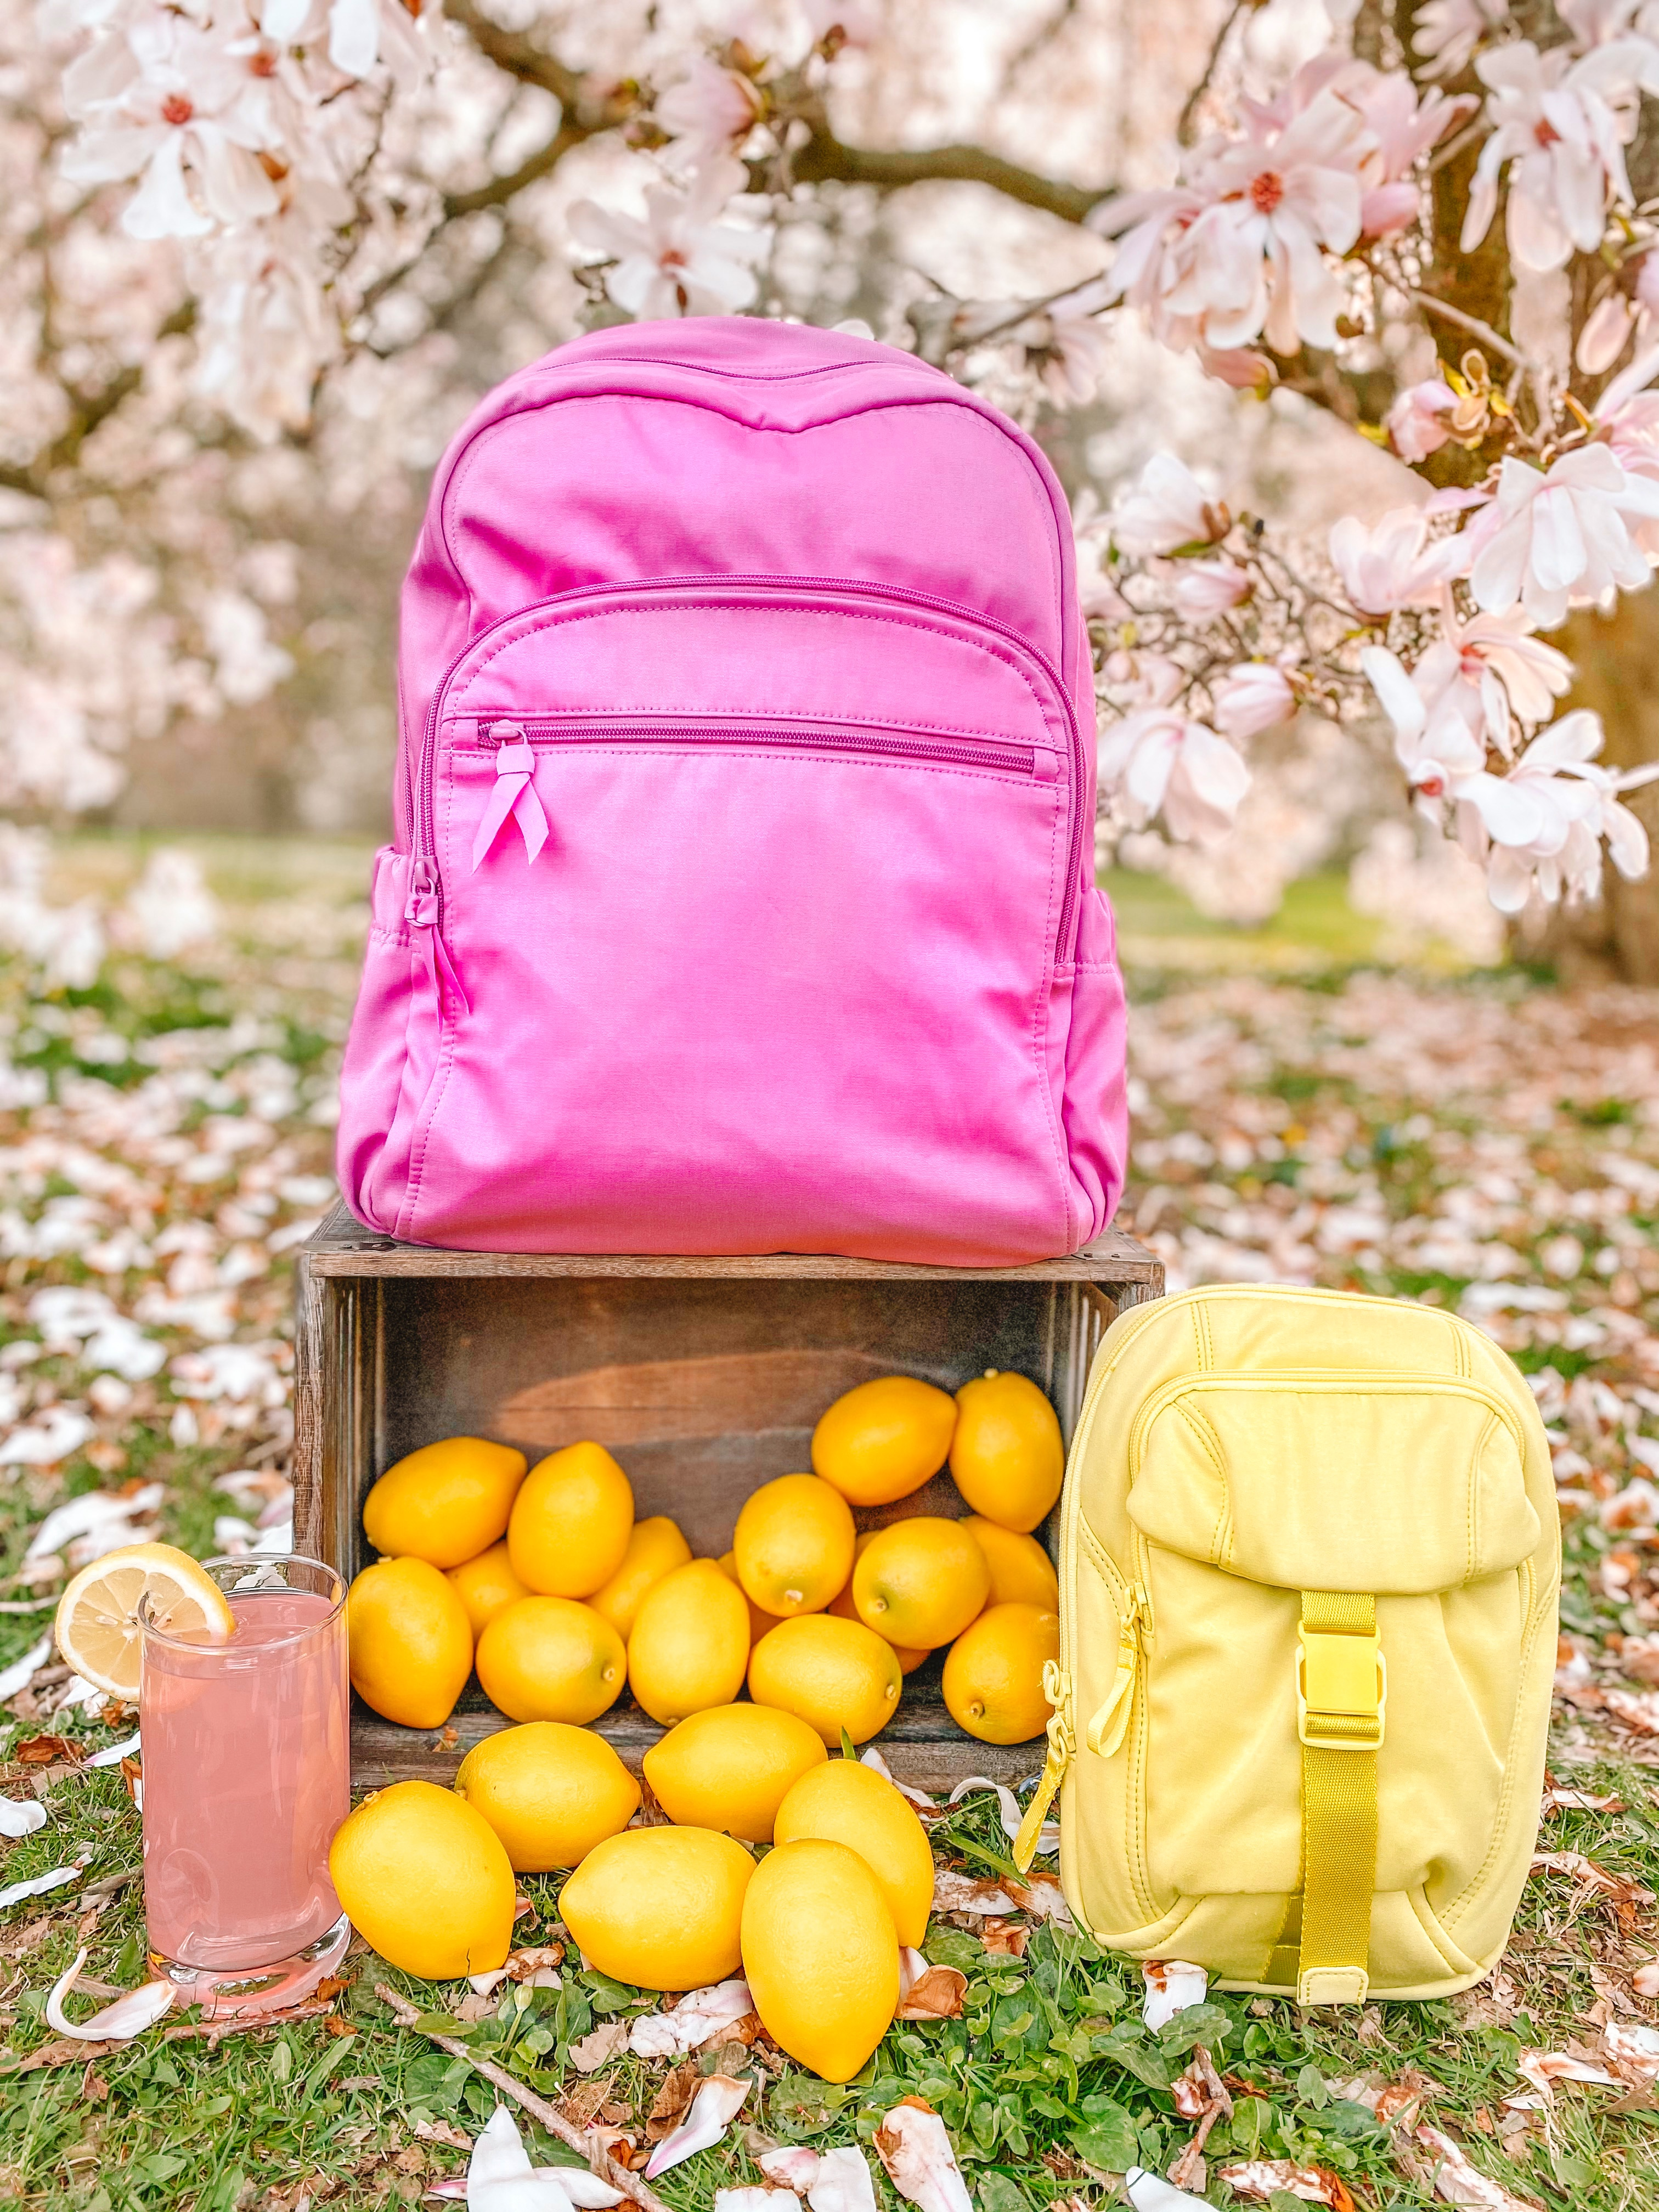 recycled cotton vera bradley bags in the springtime with pink lemonade